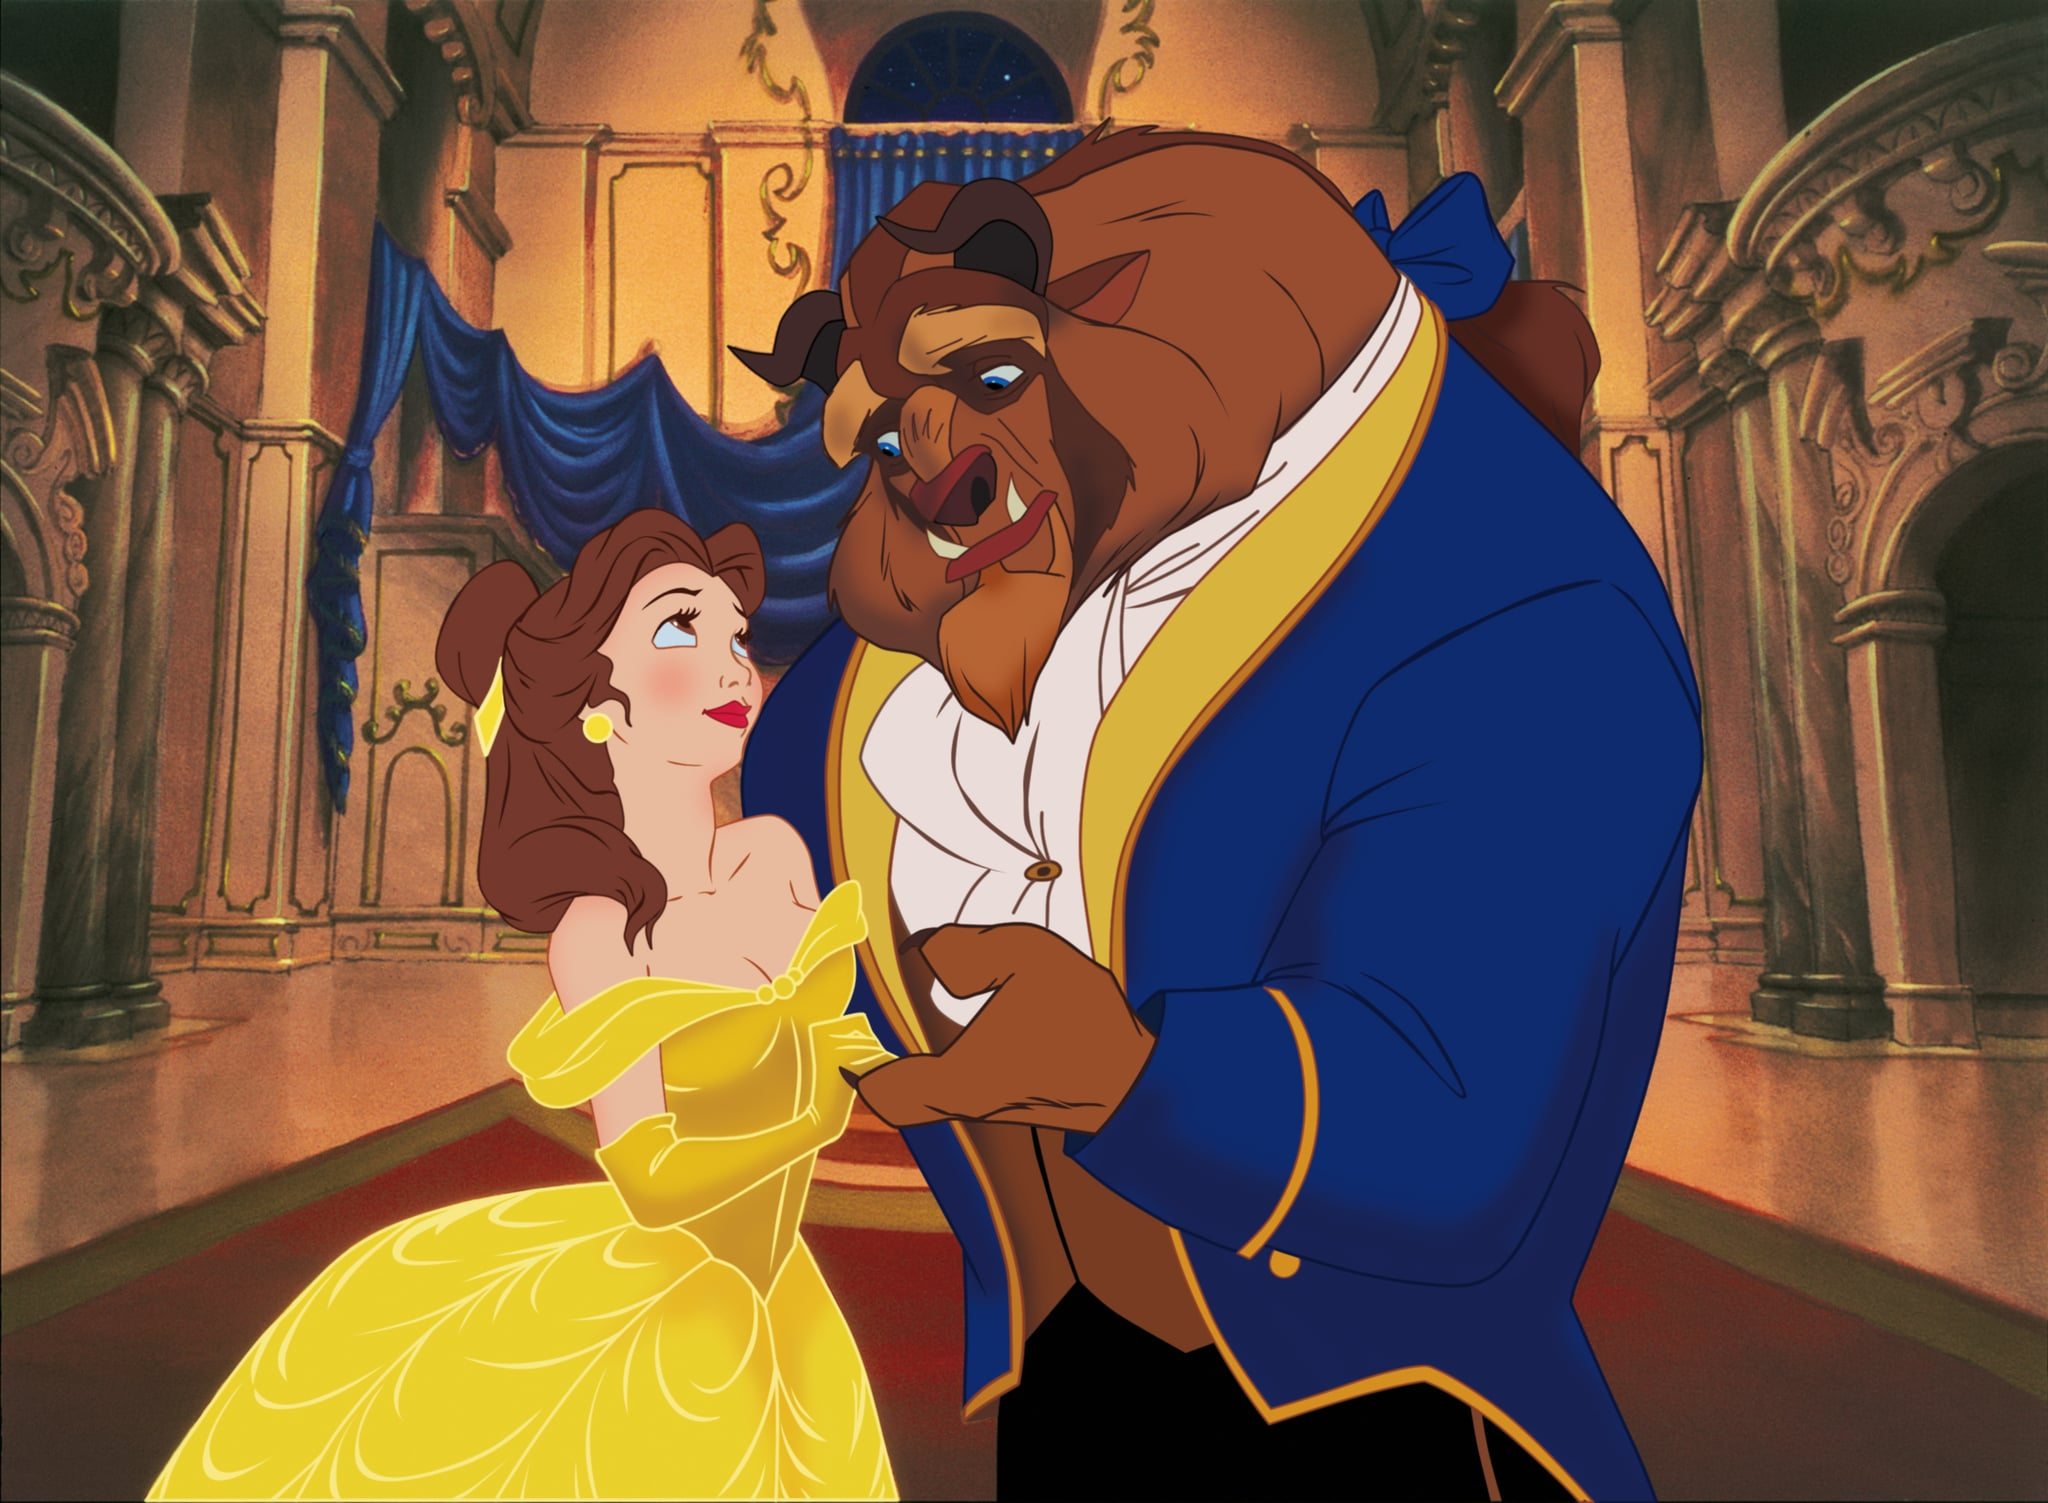 BEAUTY AND THE BEAST, l-r: Belle (voice: Paige O'Hara), Beast (voice: Robby Benson) in 2012 3D re-release, 1991, Walt Disney Pictures/courtesy Everett Collection